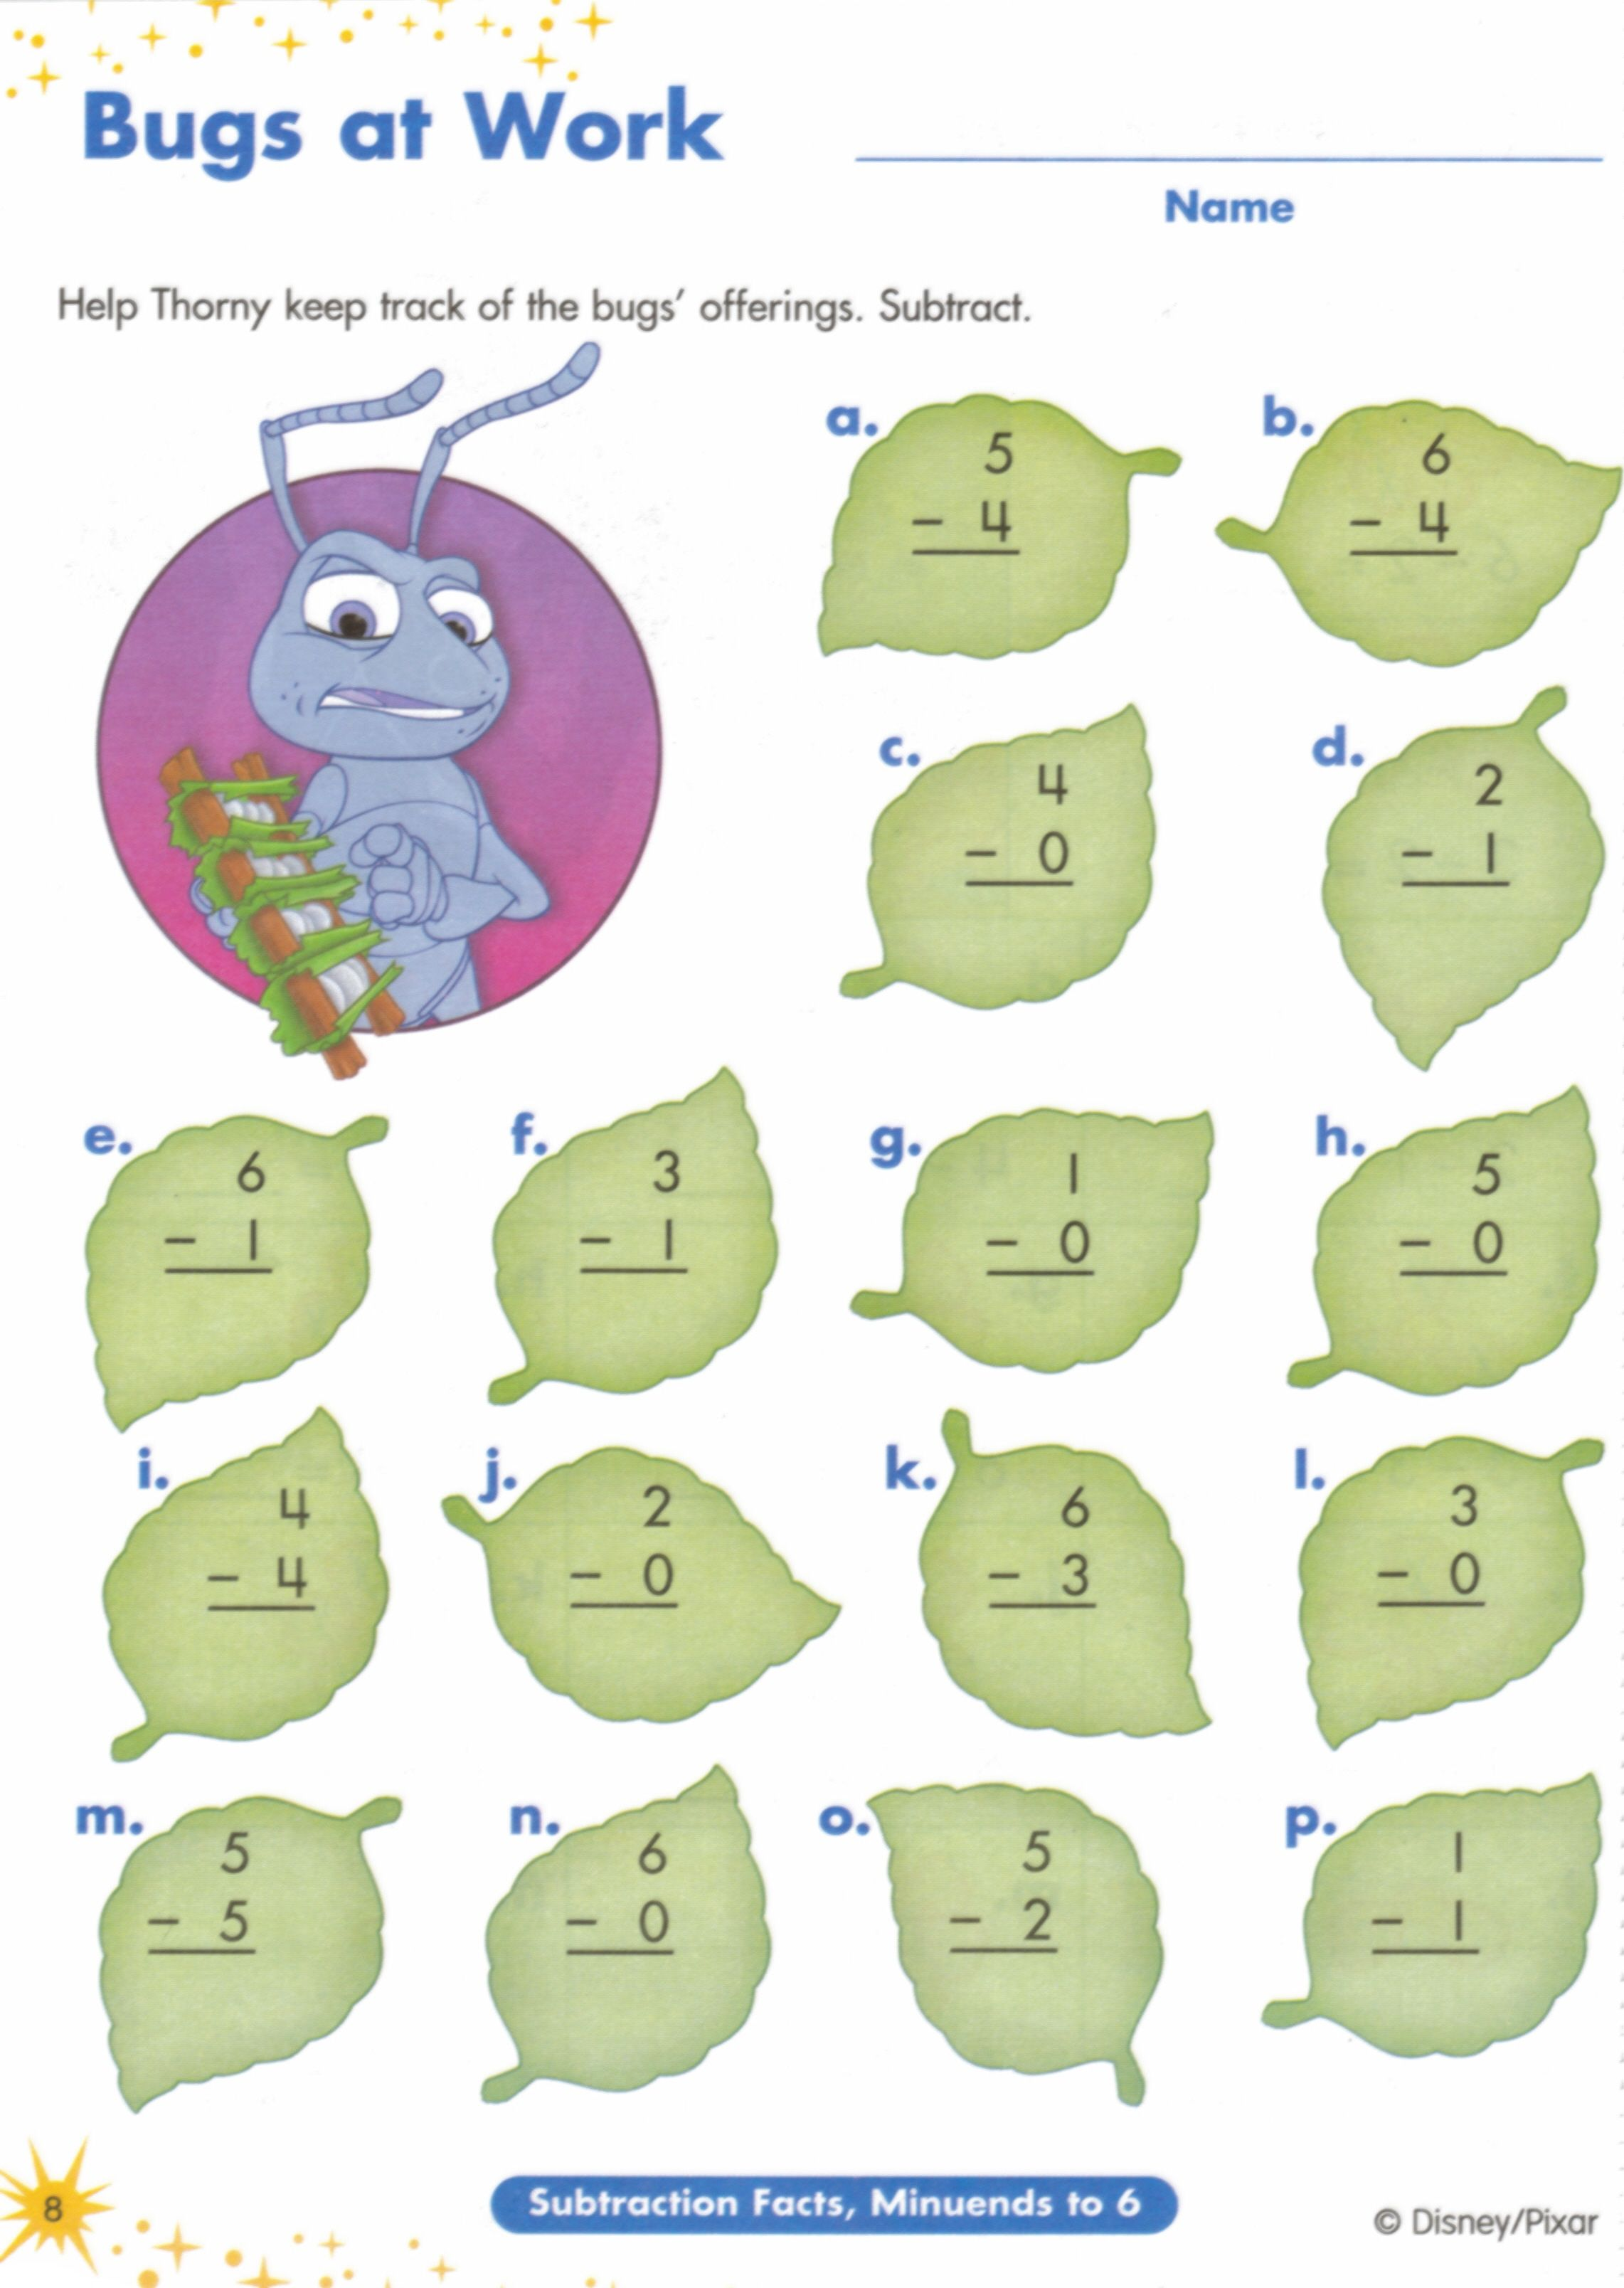 Weirdmailus  Fascinating  Images About Worksheets On Pinterest  Fun Facts For Kids  With Interesting  Images About Worksheets On Pinterest  Fun Facts For Kids Earth Day Worksheets And Jungles With Adorable Complete Subject And Complete Predicate Worksheets Also Long Vowel E Worksheets In Addition Leaf Dichotomous Key Worksheet And Regular Plurals Worksheet As Well As Algebra  Lessons And Worksheets Additionally Sight Words Printable Worksheets From Pinterestcom With Weirdmailus  Interesting  Images About Worksheets On Pinterest  Fun Facts For Kids  With Adorable  Images About Worksheets On Pinterest  Fun Facts For Kids Earth Day Worksheets And Jungles And Fascinating Complete Subject And Complete Predicate Worksheets Also Long Vowel E Worksheets In Addition Leaf Dichotomous Key Worksheet From Pinterestcom